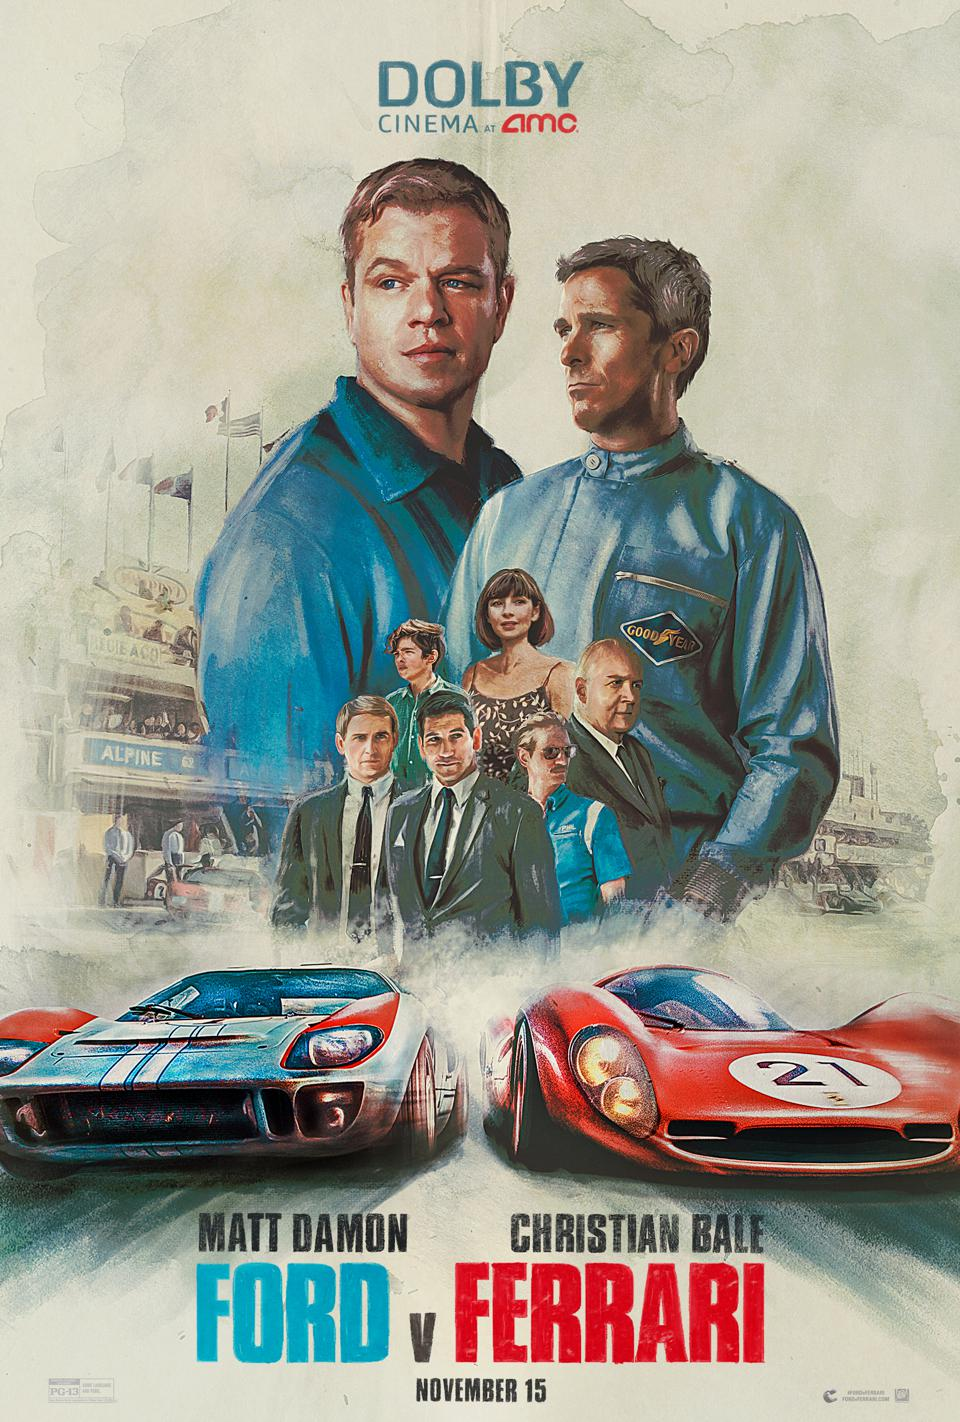 Ford vs Ferrari/Lemans '66 poster